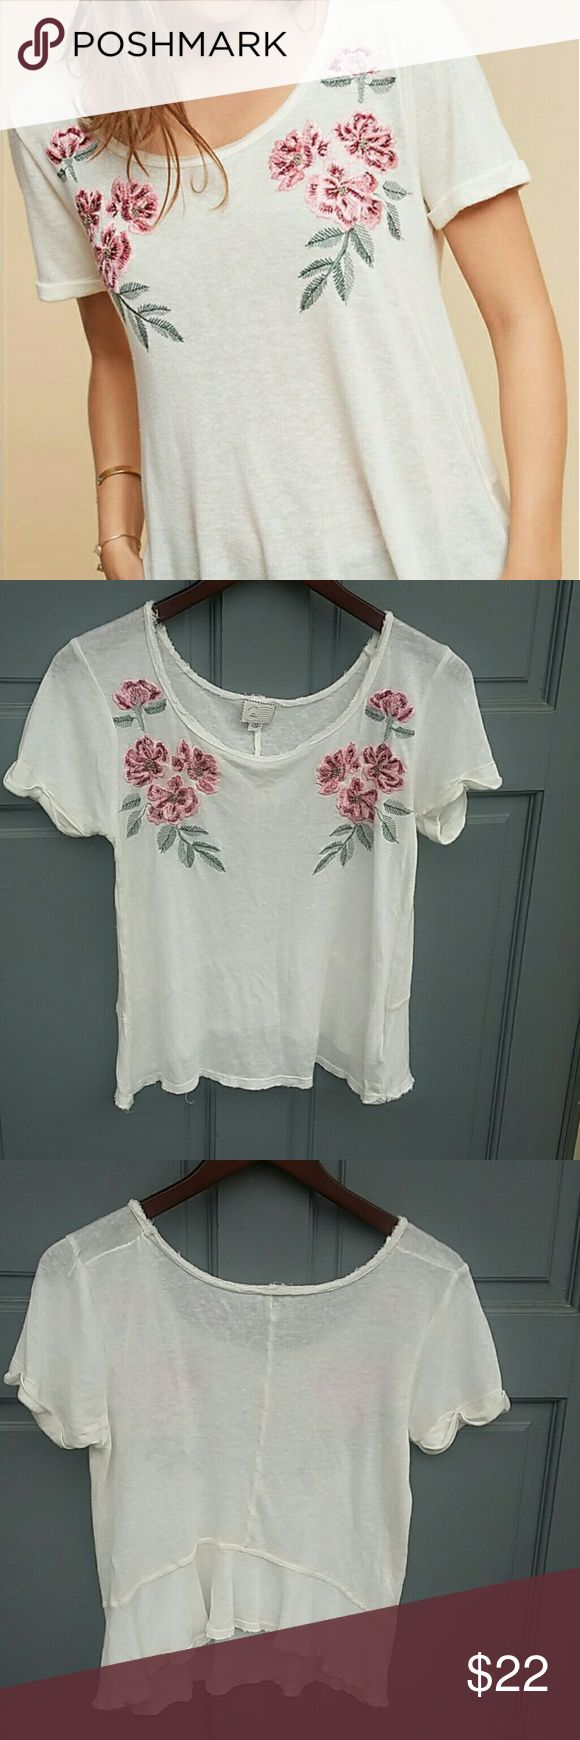 """Anthropologie Postmark floral top- XS Cream embroidered floral top from Anthropologie. Rayon and linen blend. Excellent condition. Made to look slightly frayed around neck and hemline. Size is extra small. Measures 22.5"""" from shoulder to hem. Bust measures 18"""". Made to fit loose. Anthropologie Tops Blouses"""